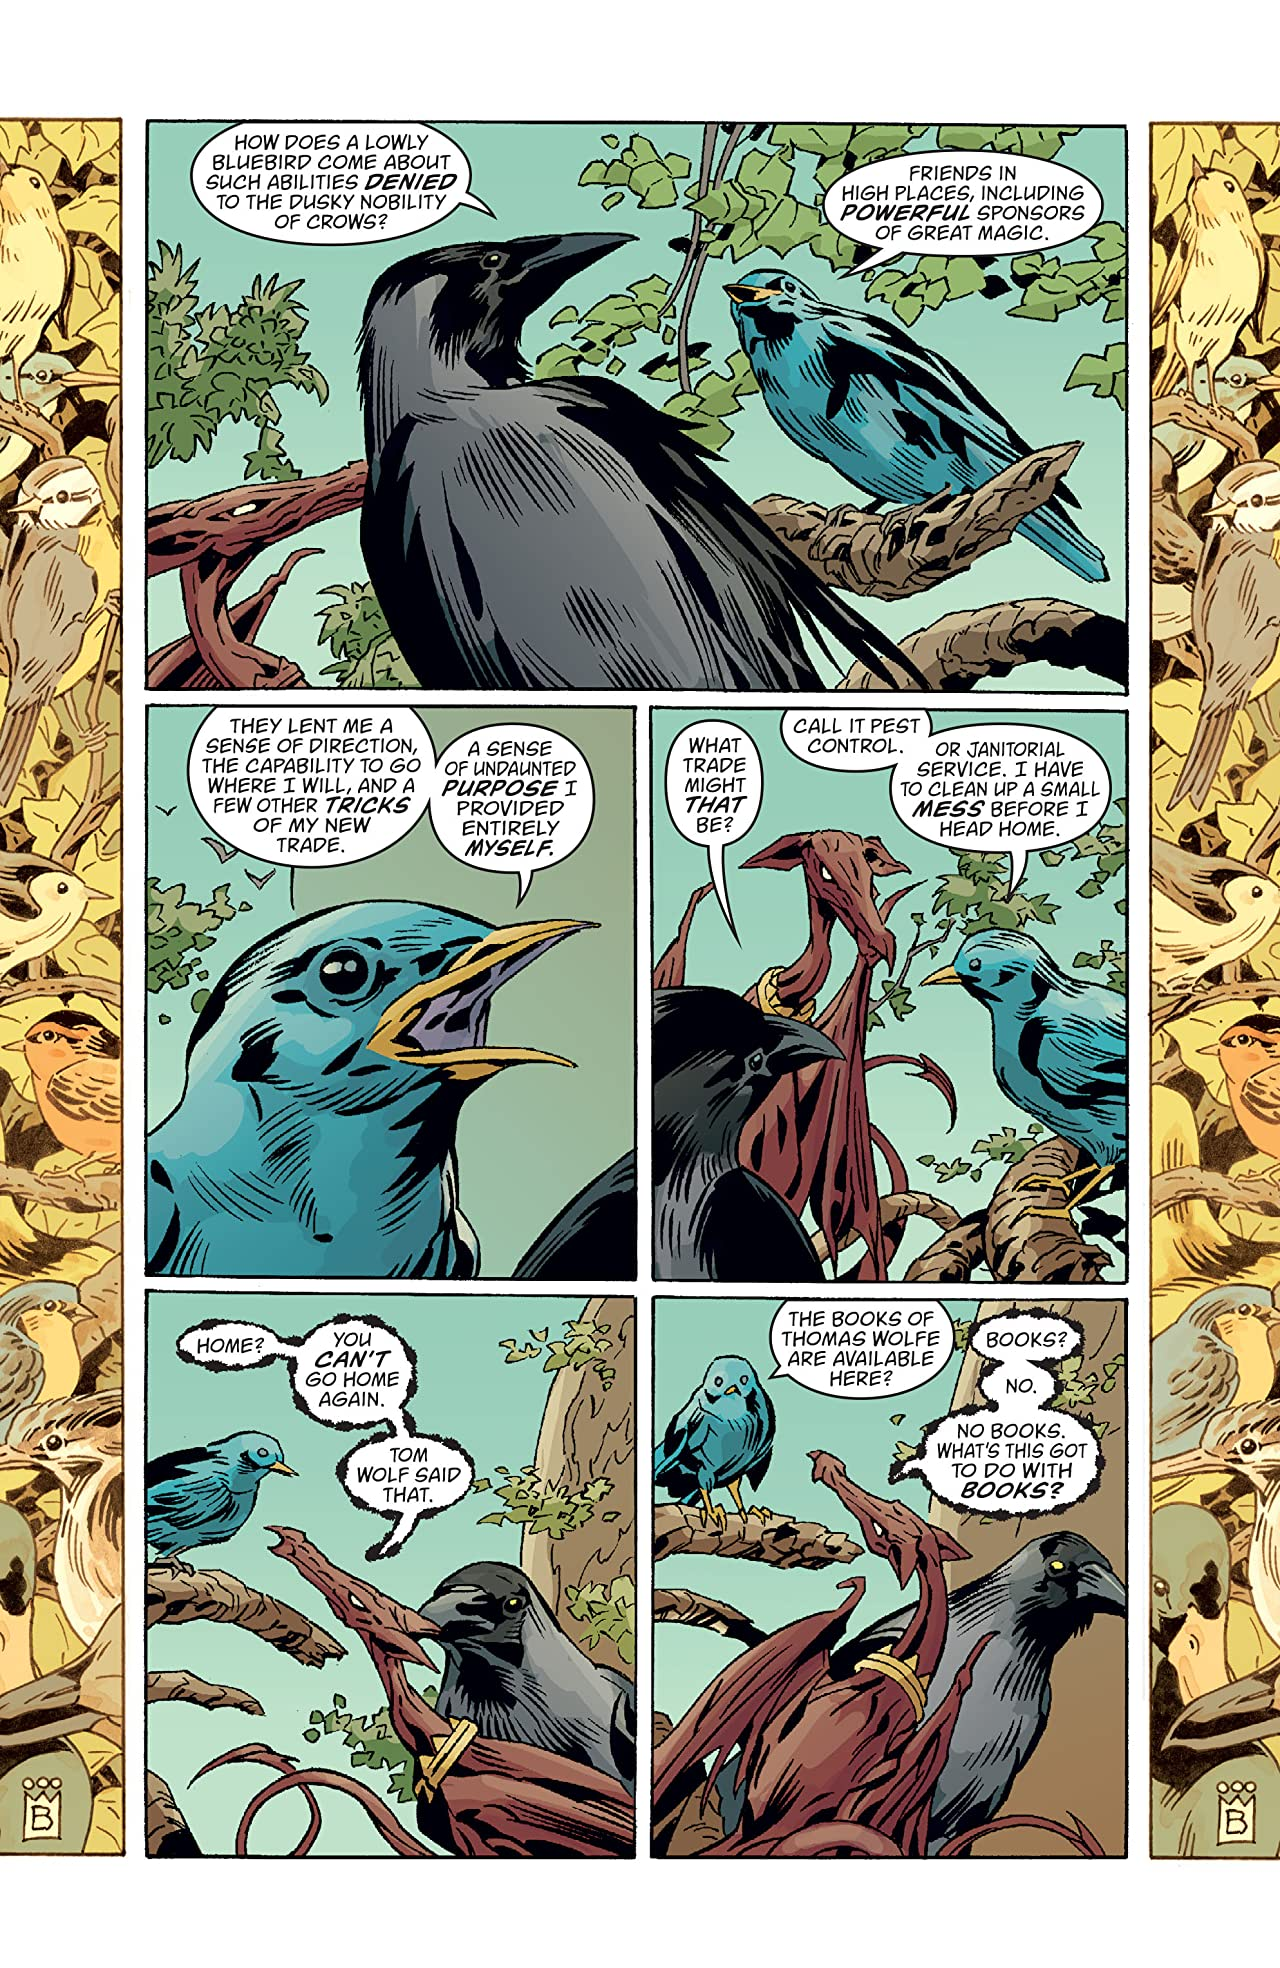 Fables #146